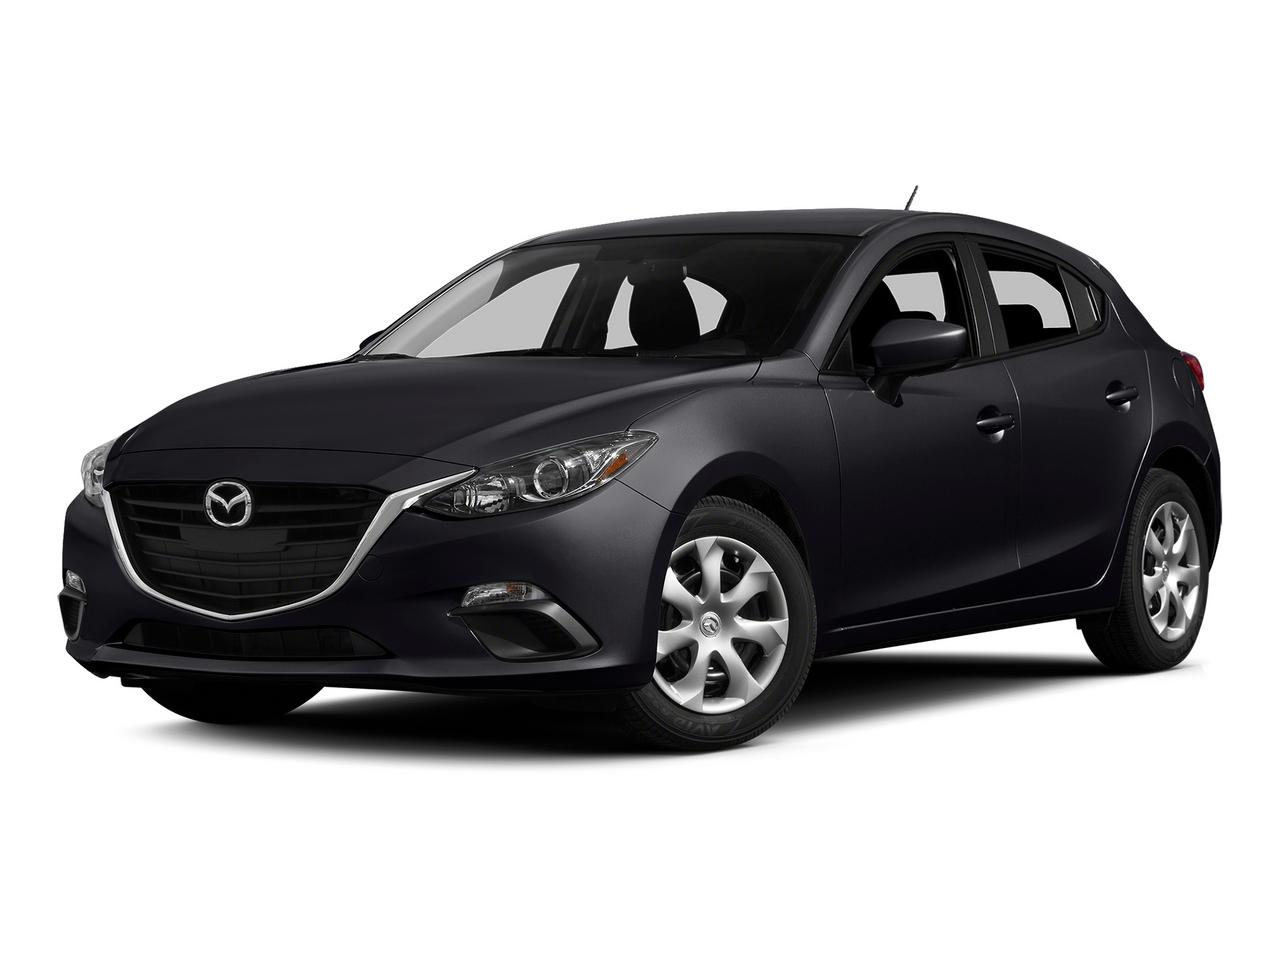 2015 Mazda Mazda3 Vehicle Photo in King George, VA 22485